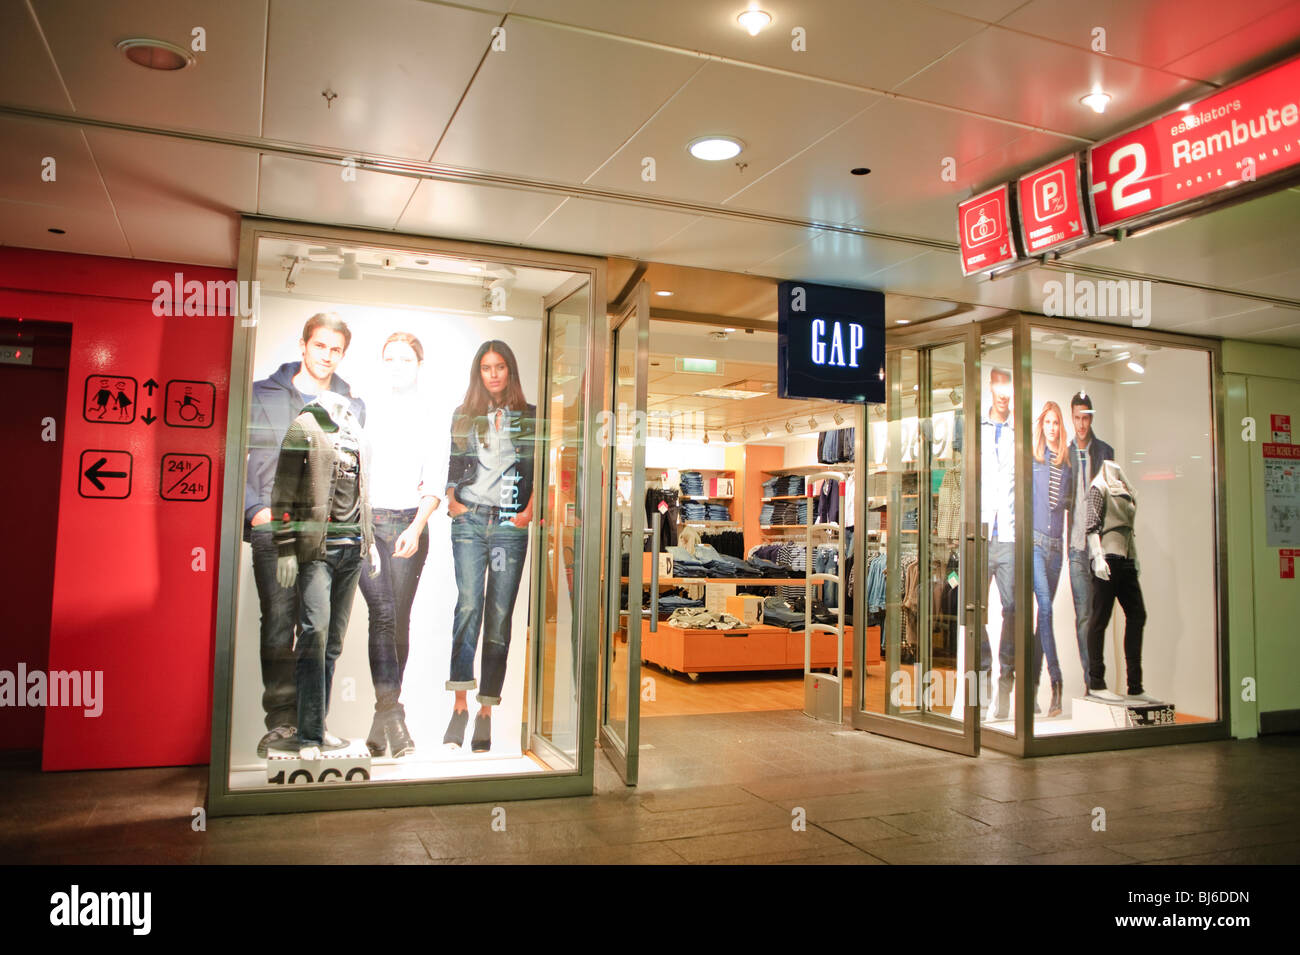 Paris france the gap store at les halles le forum des ha - Les halles paris shopping ...